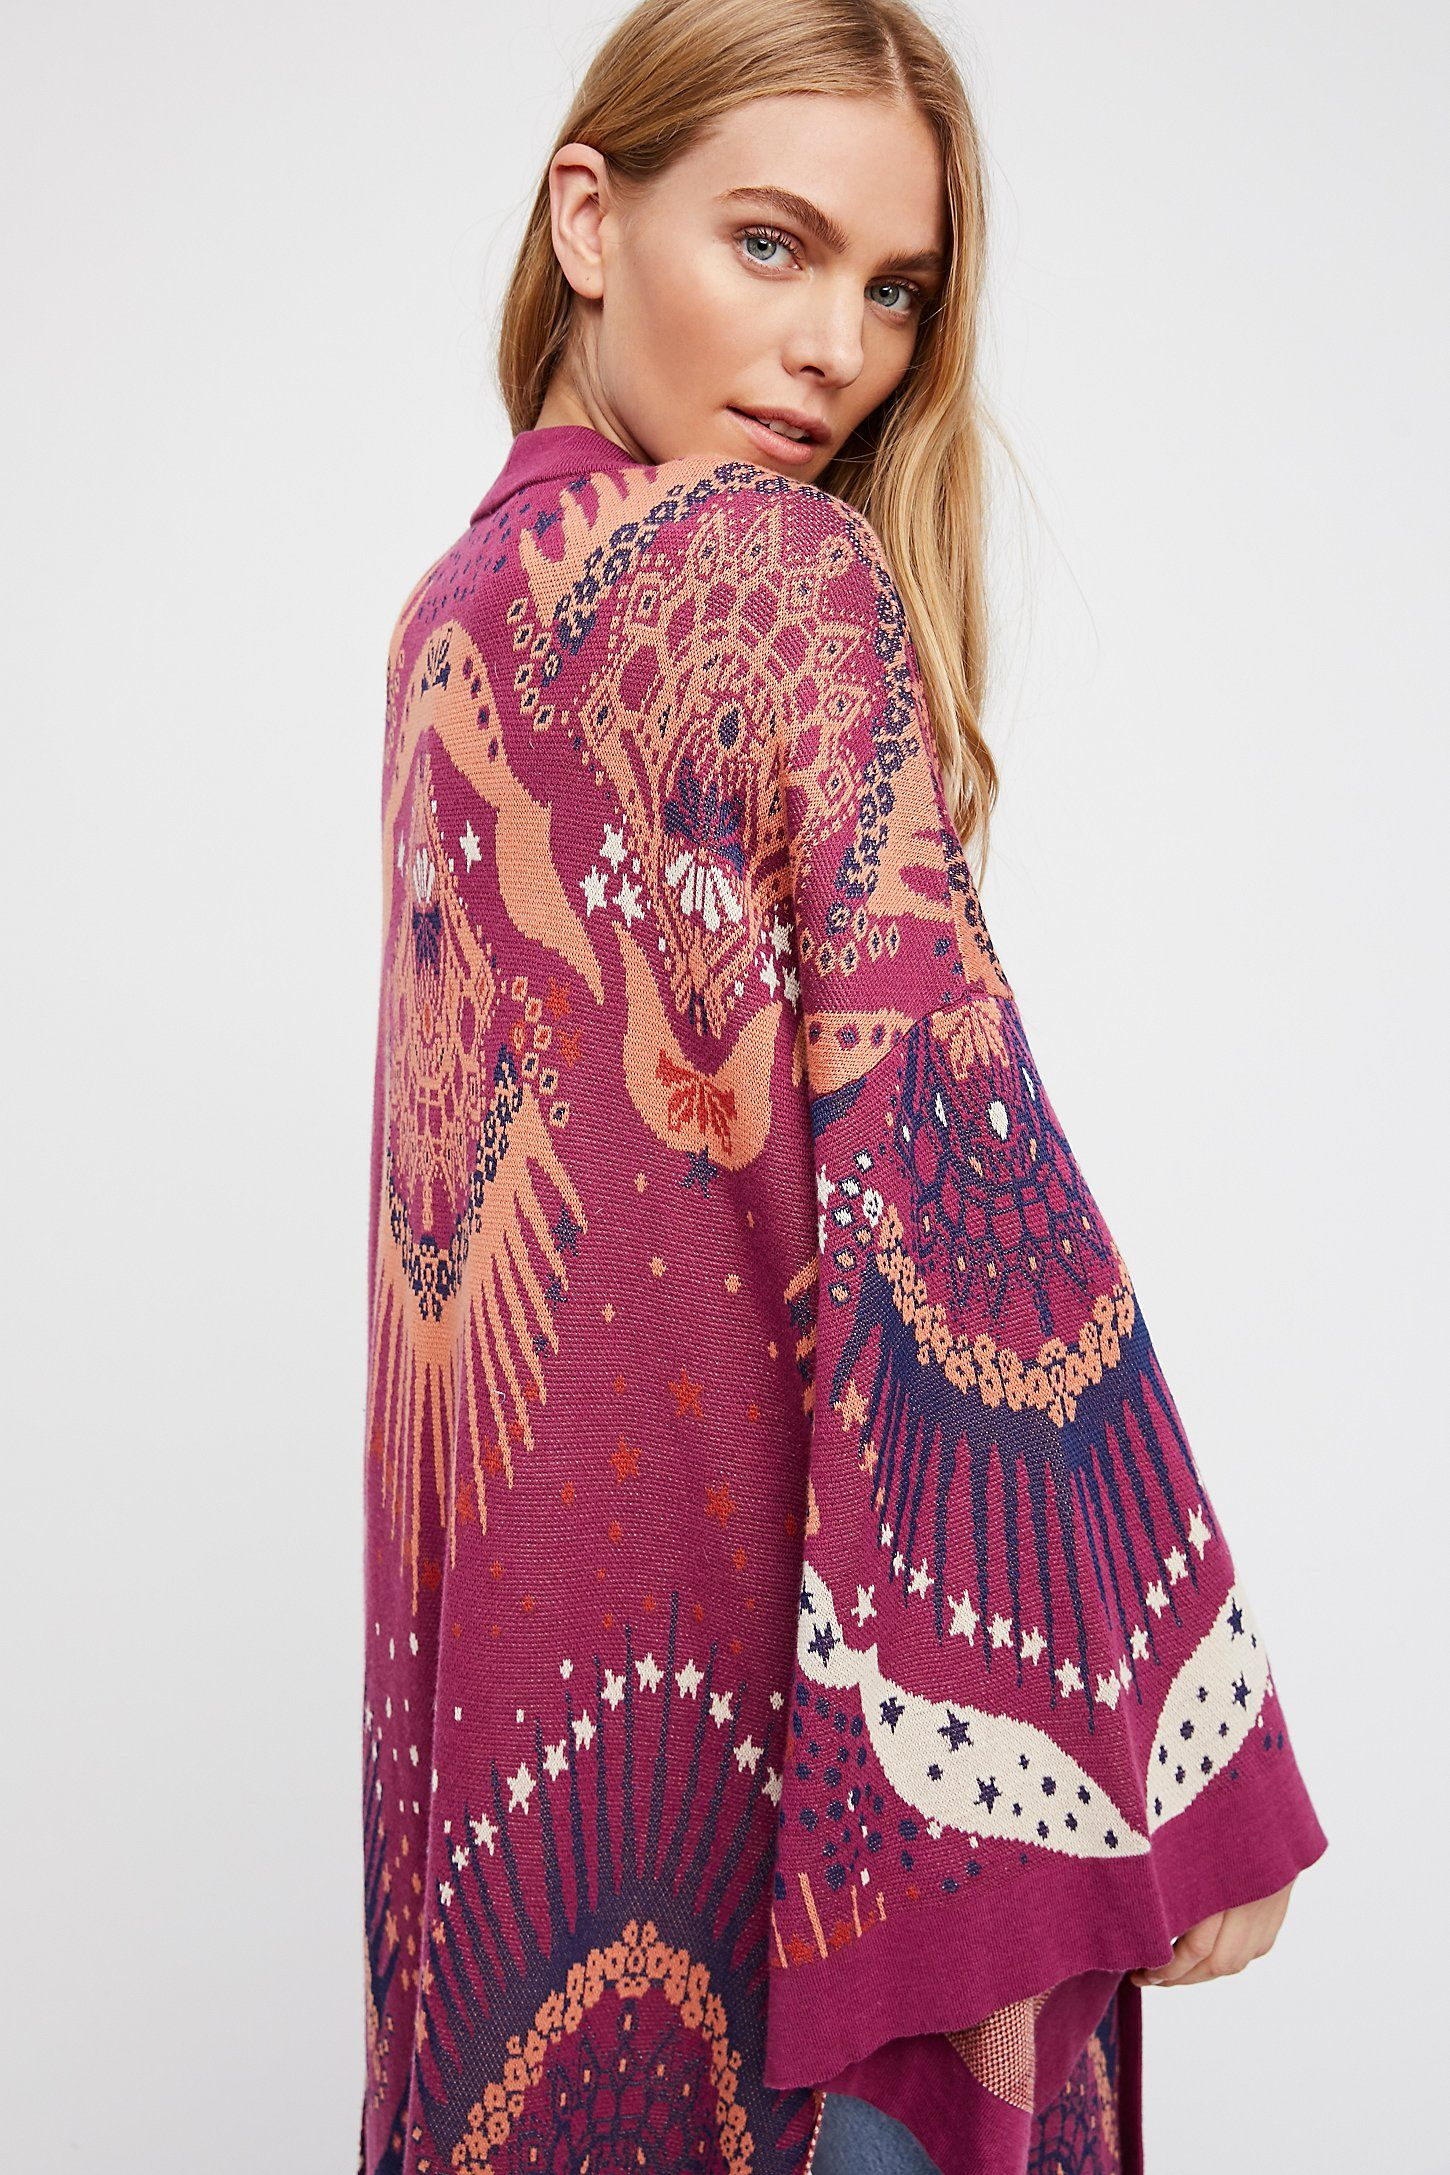 90f0801954 Shop our Psychedelic Kimono at FreePeople.com. Share style pics with FP Me,  and read & post reviews. Free shipping worldwide - see site for details.